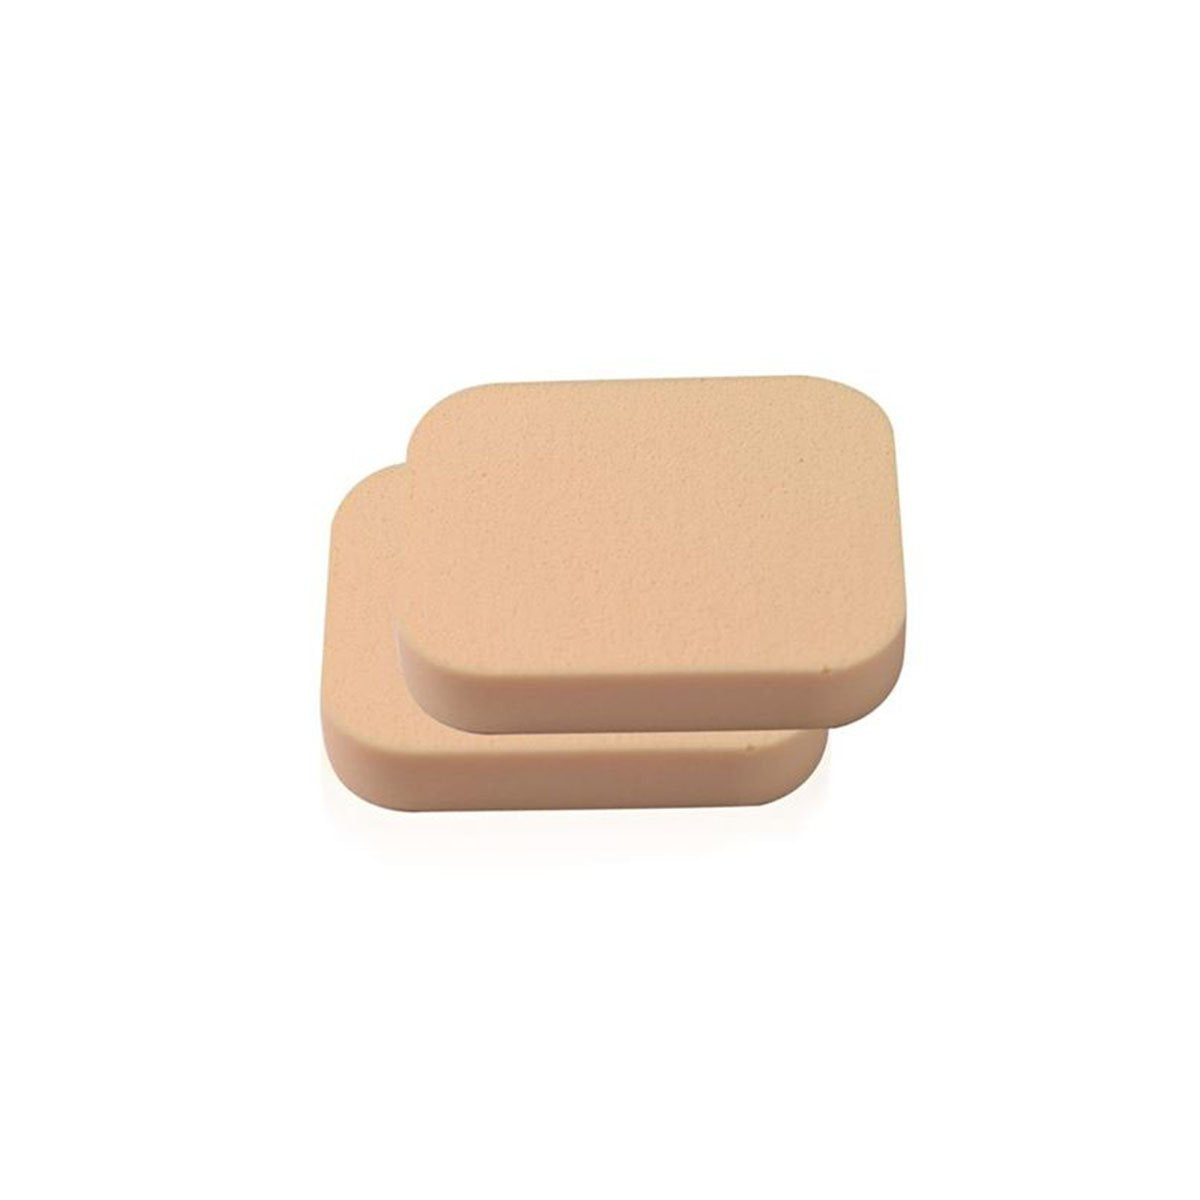 Nascita Do Make-Up Sponge Square